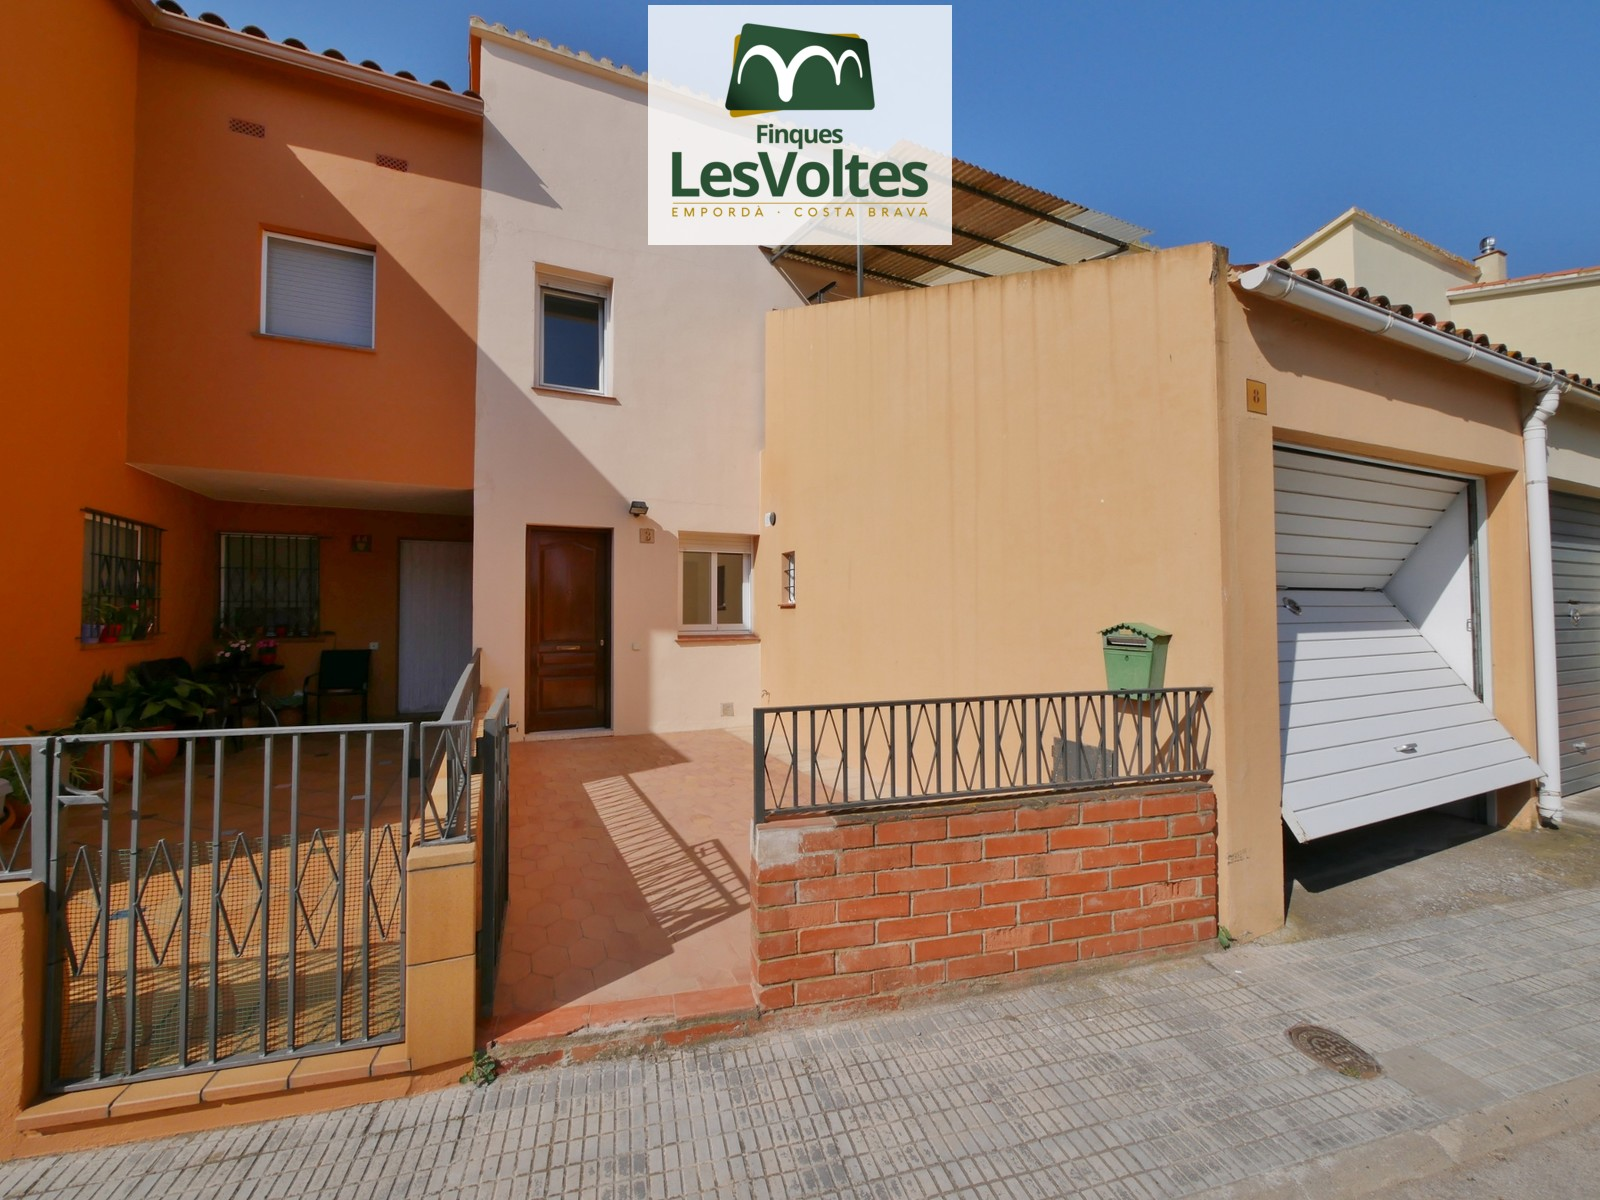 TERRACED HOUSE OF 100 M2 WITH 4 BEDROOMS, GARAGE, PATIO AND TERRACE FOR RENT IN CORÇÀ.